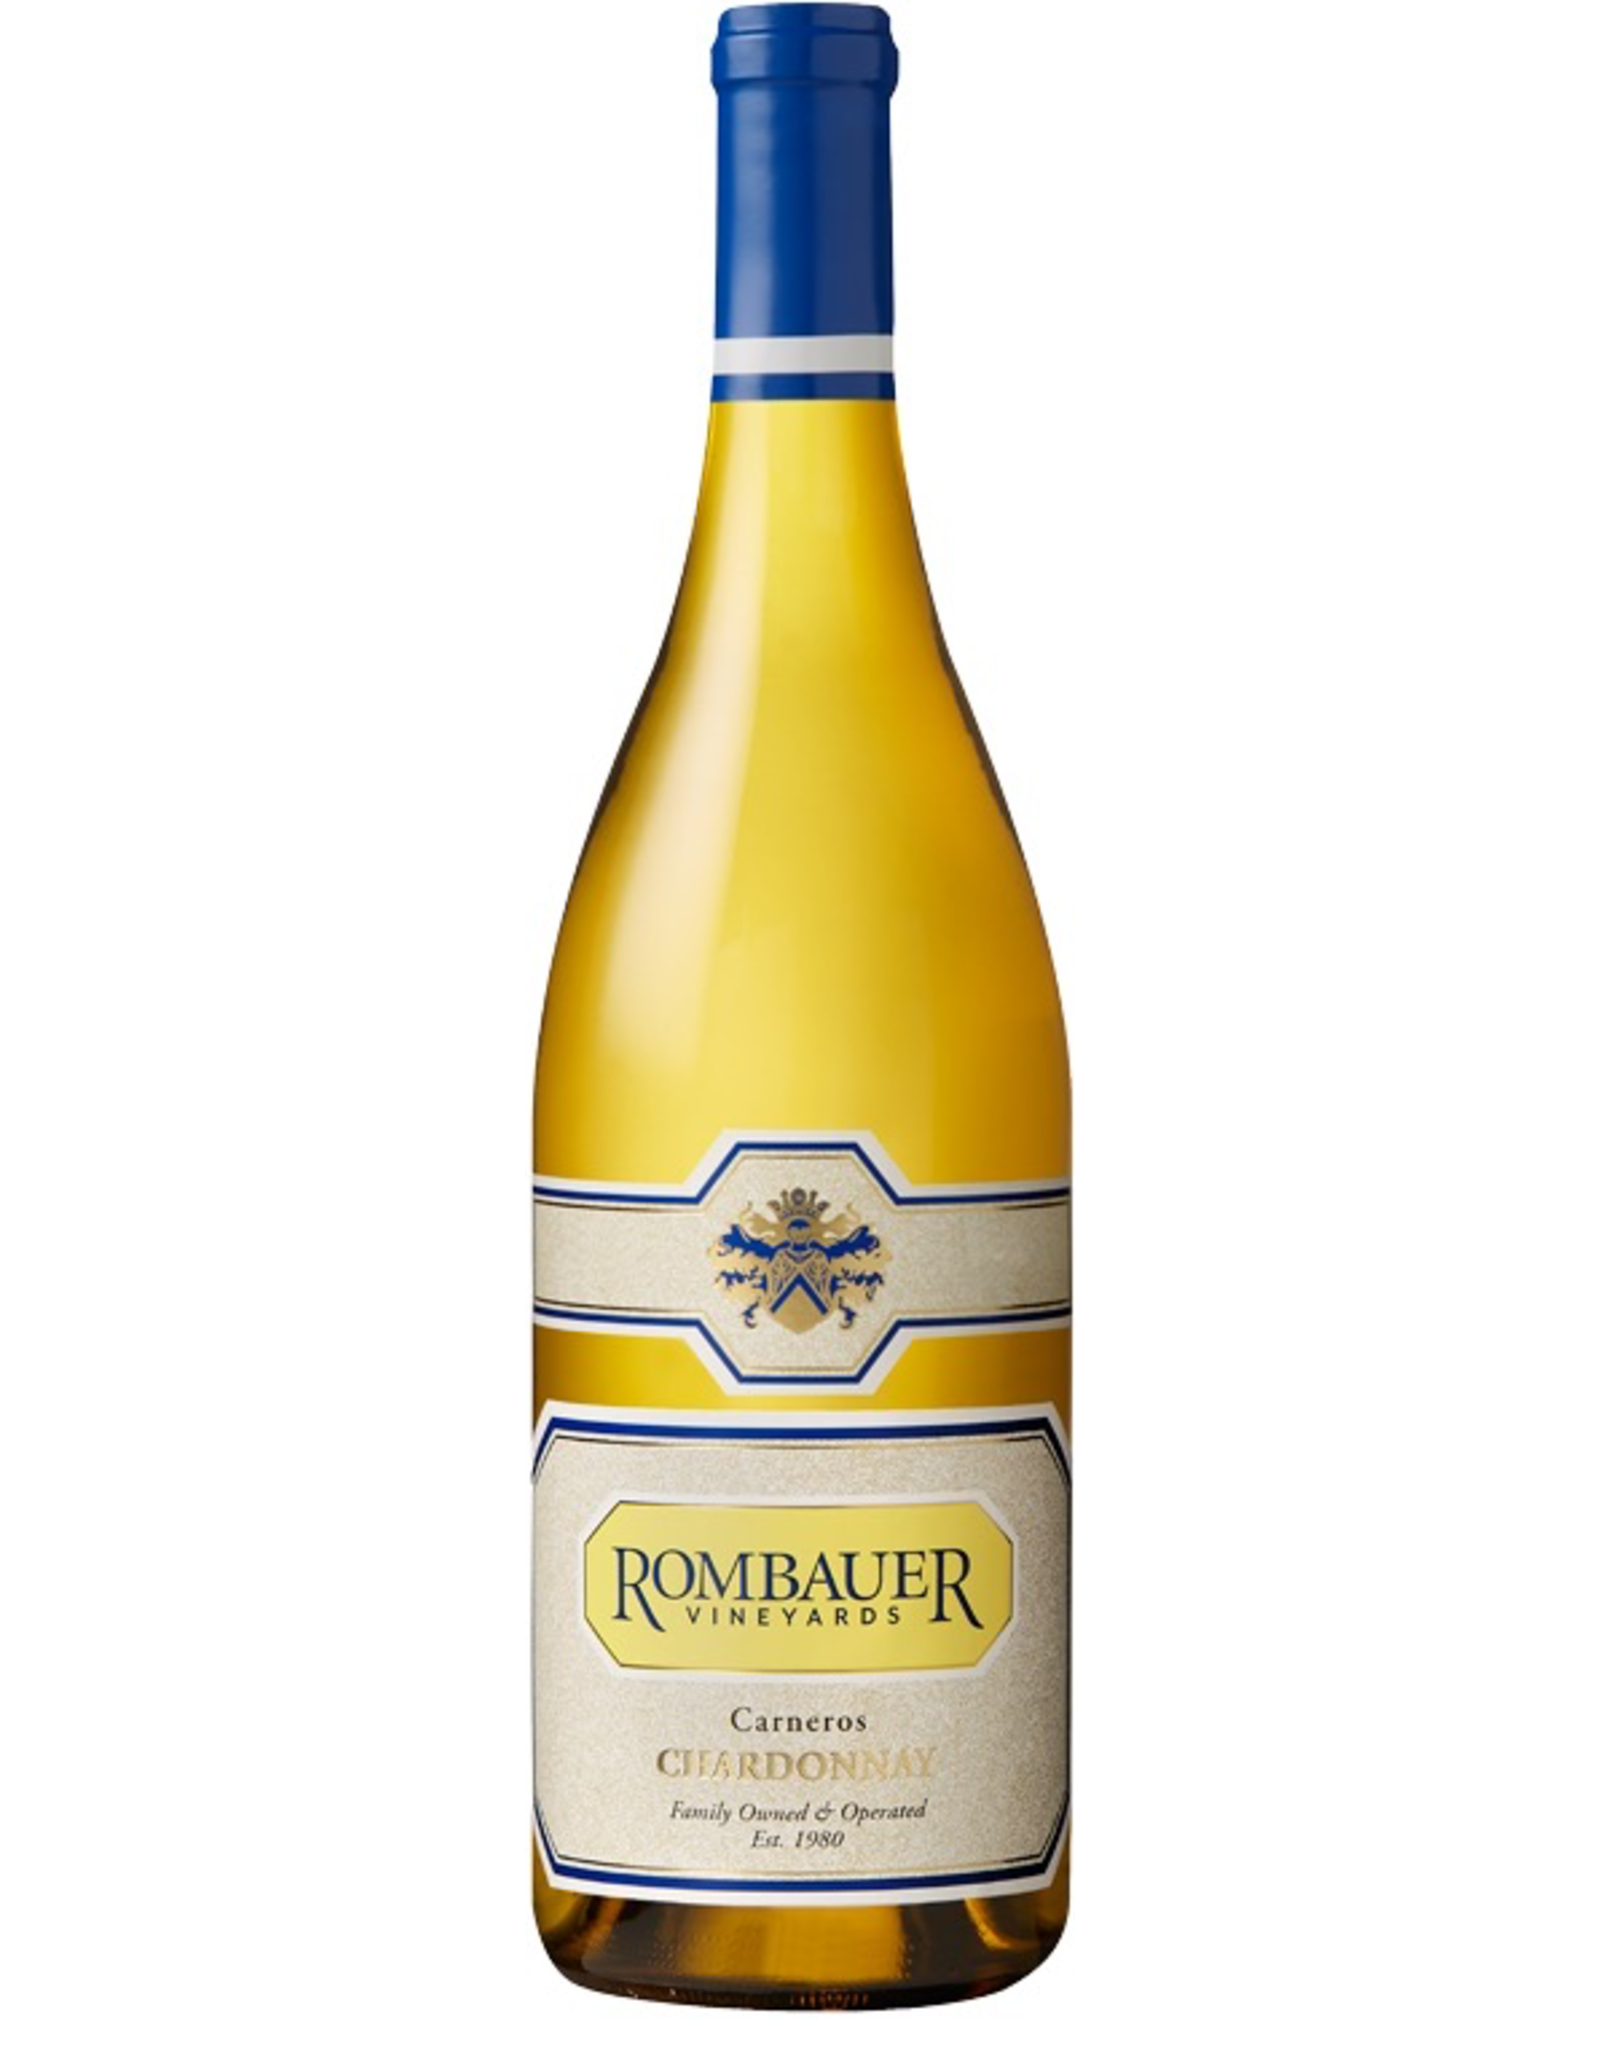 White Wine 2019, Rombauer, Chardonnay, Carneros, Napa/ Sonoma Counties, California,14.6% Alc, CT90